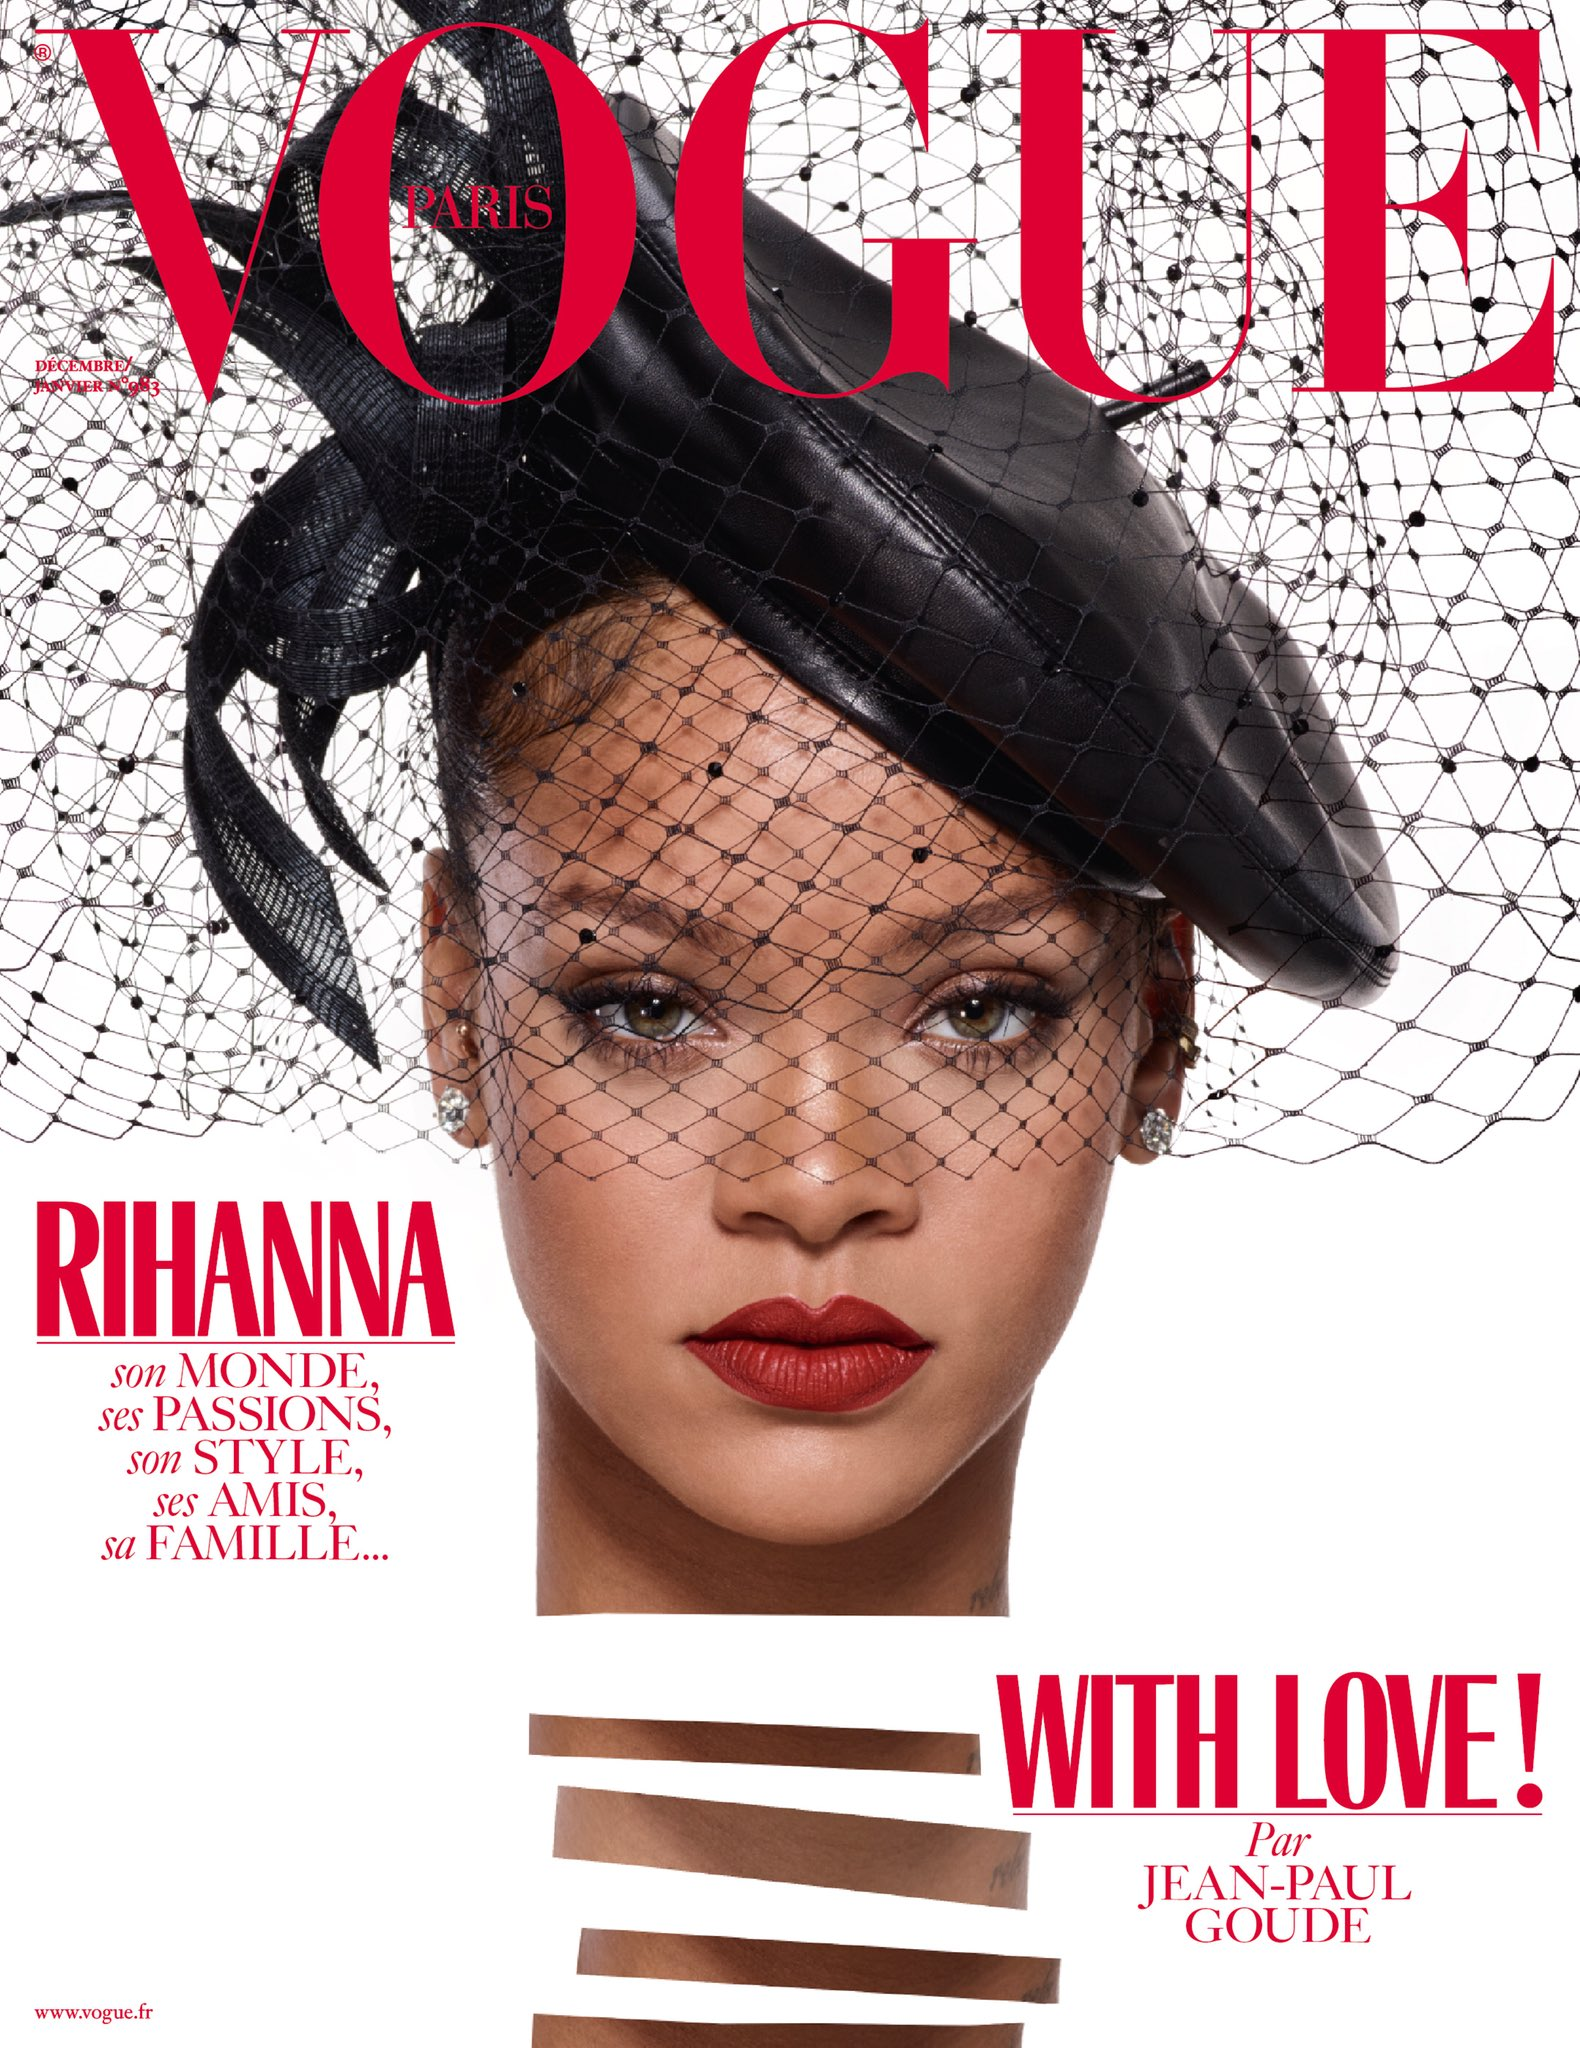 Rihanna Vogue Paris magazine cover shot by Jean Paul Goude